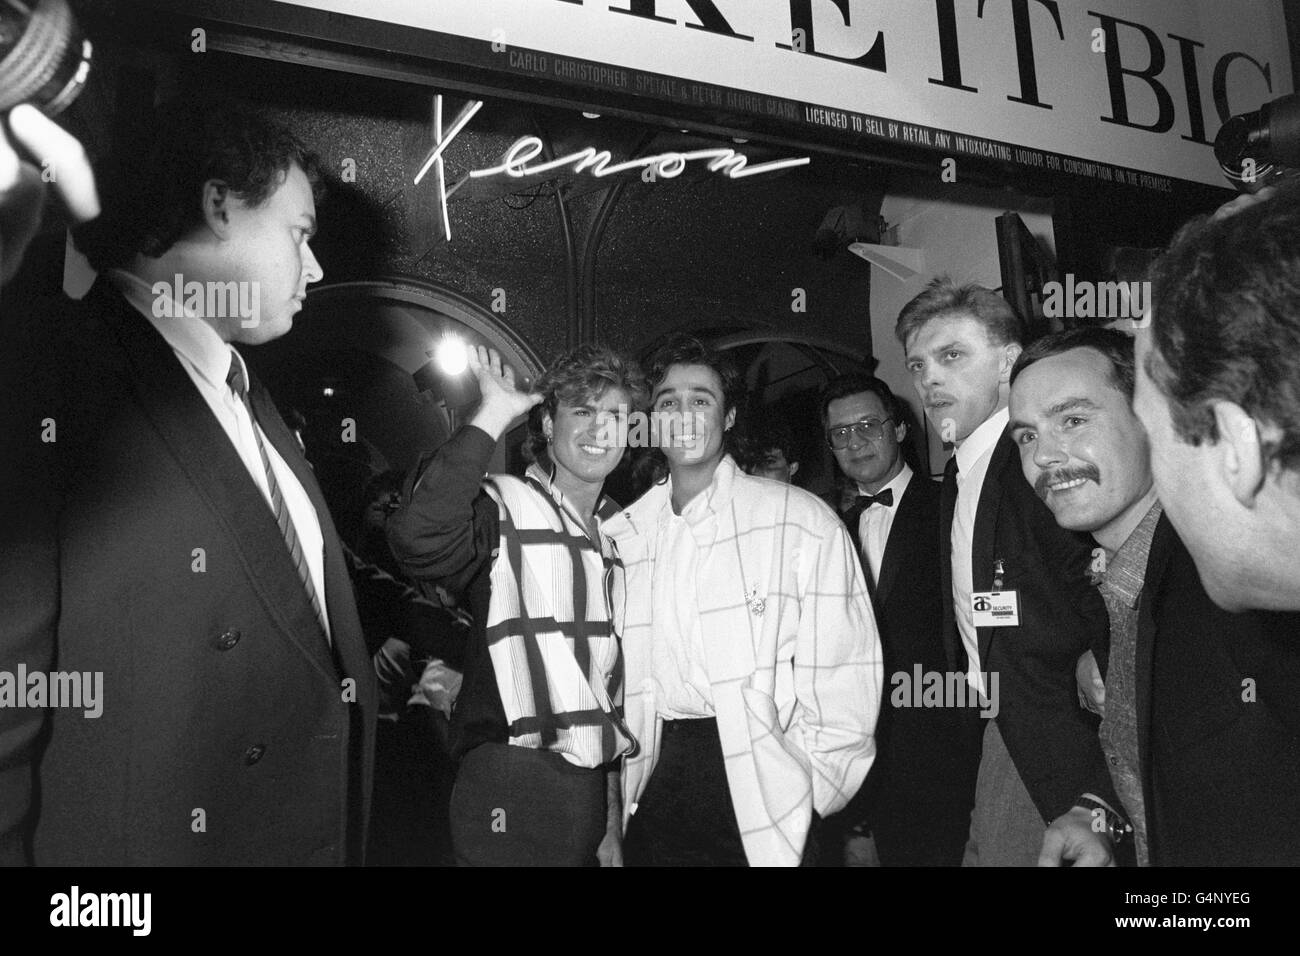 Music - Wham! Launch Party - London - Stock Image